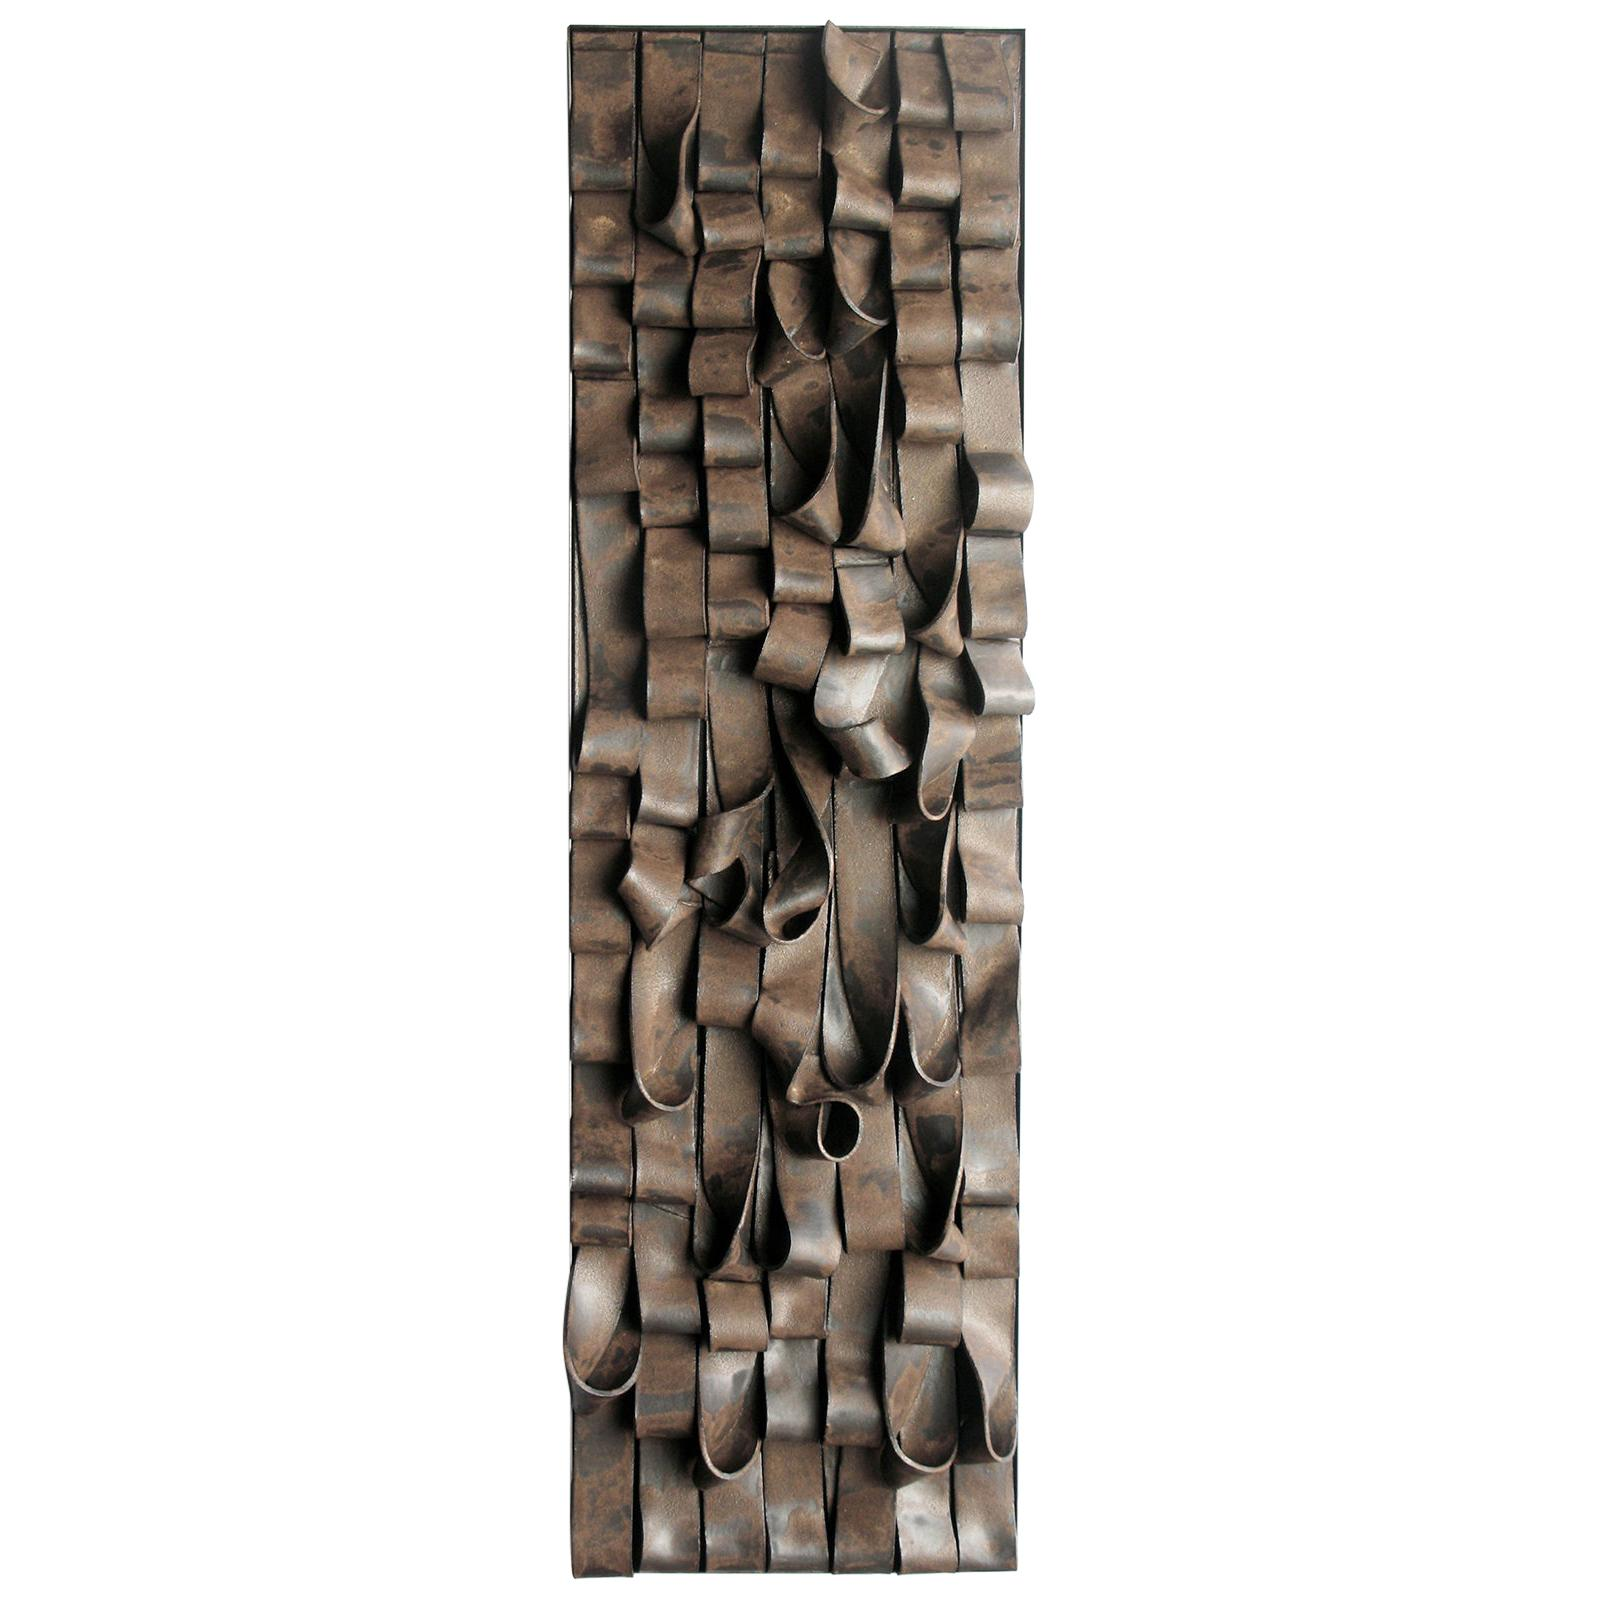 "21st Century Wall Sculpture ""OMBRE"" by Clara Graziolino Glazed Ceramic"